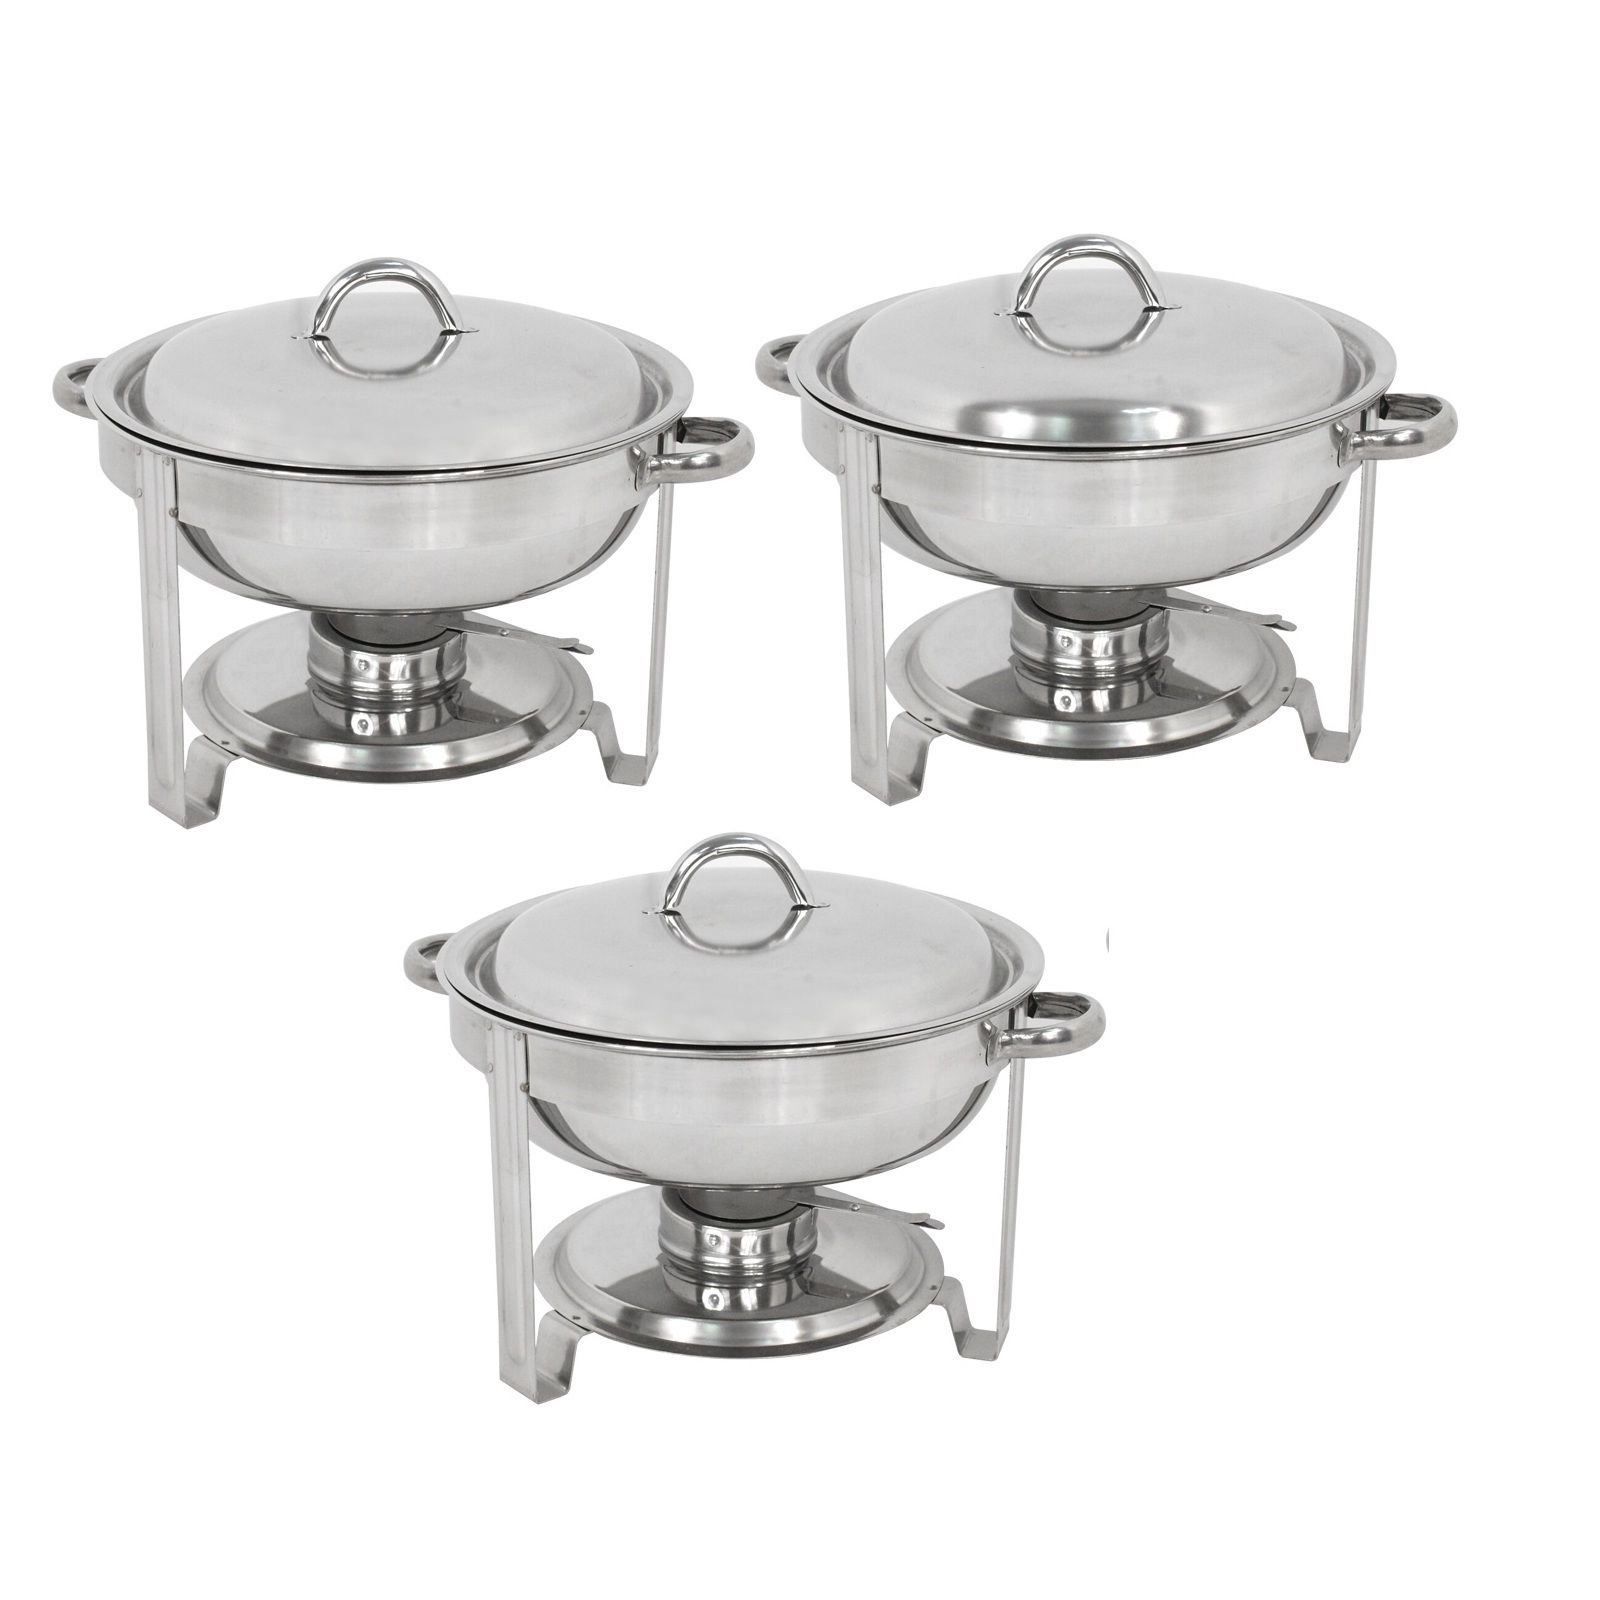 ZENY Pack of 3 Round Chafing Dish Full Size 5 Quart Stainless Steel Deep Pans Chafer Dish Set Buffet Catering Party Events Warmer Serving Set Utensils w/Fuel Holder (3) by ZENY